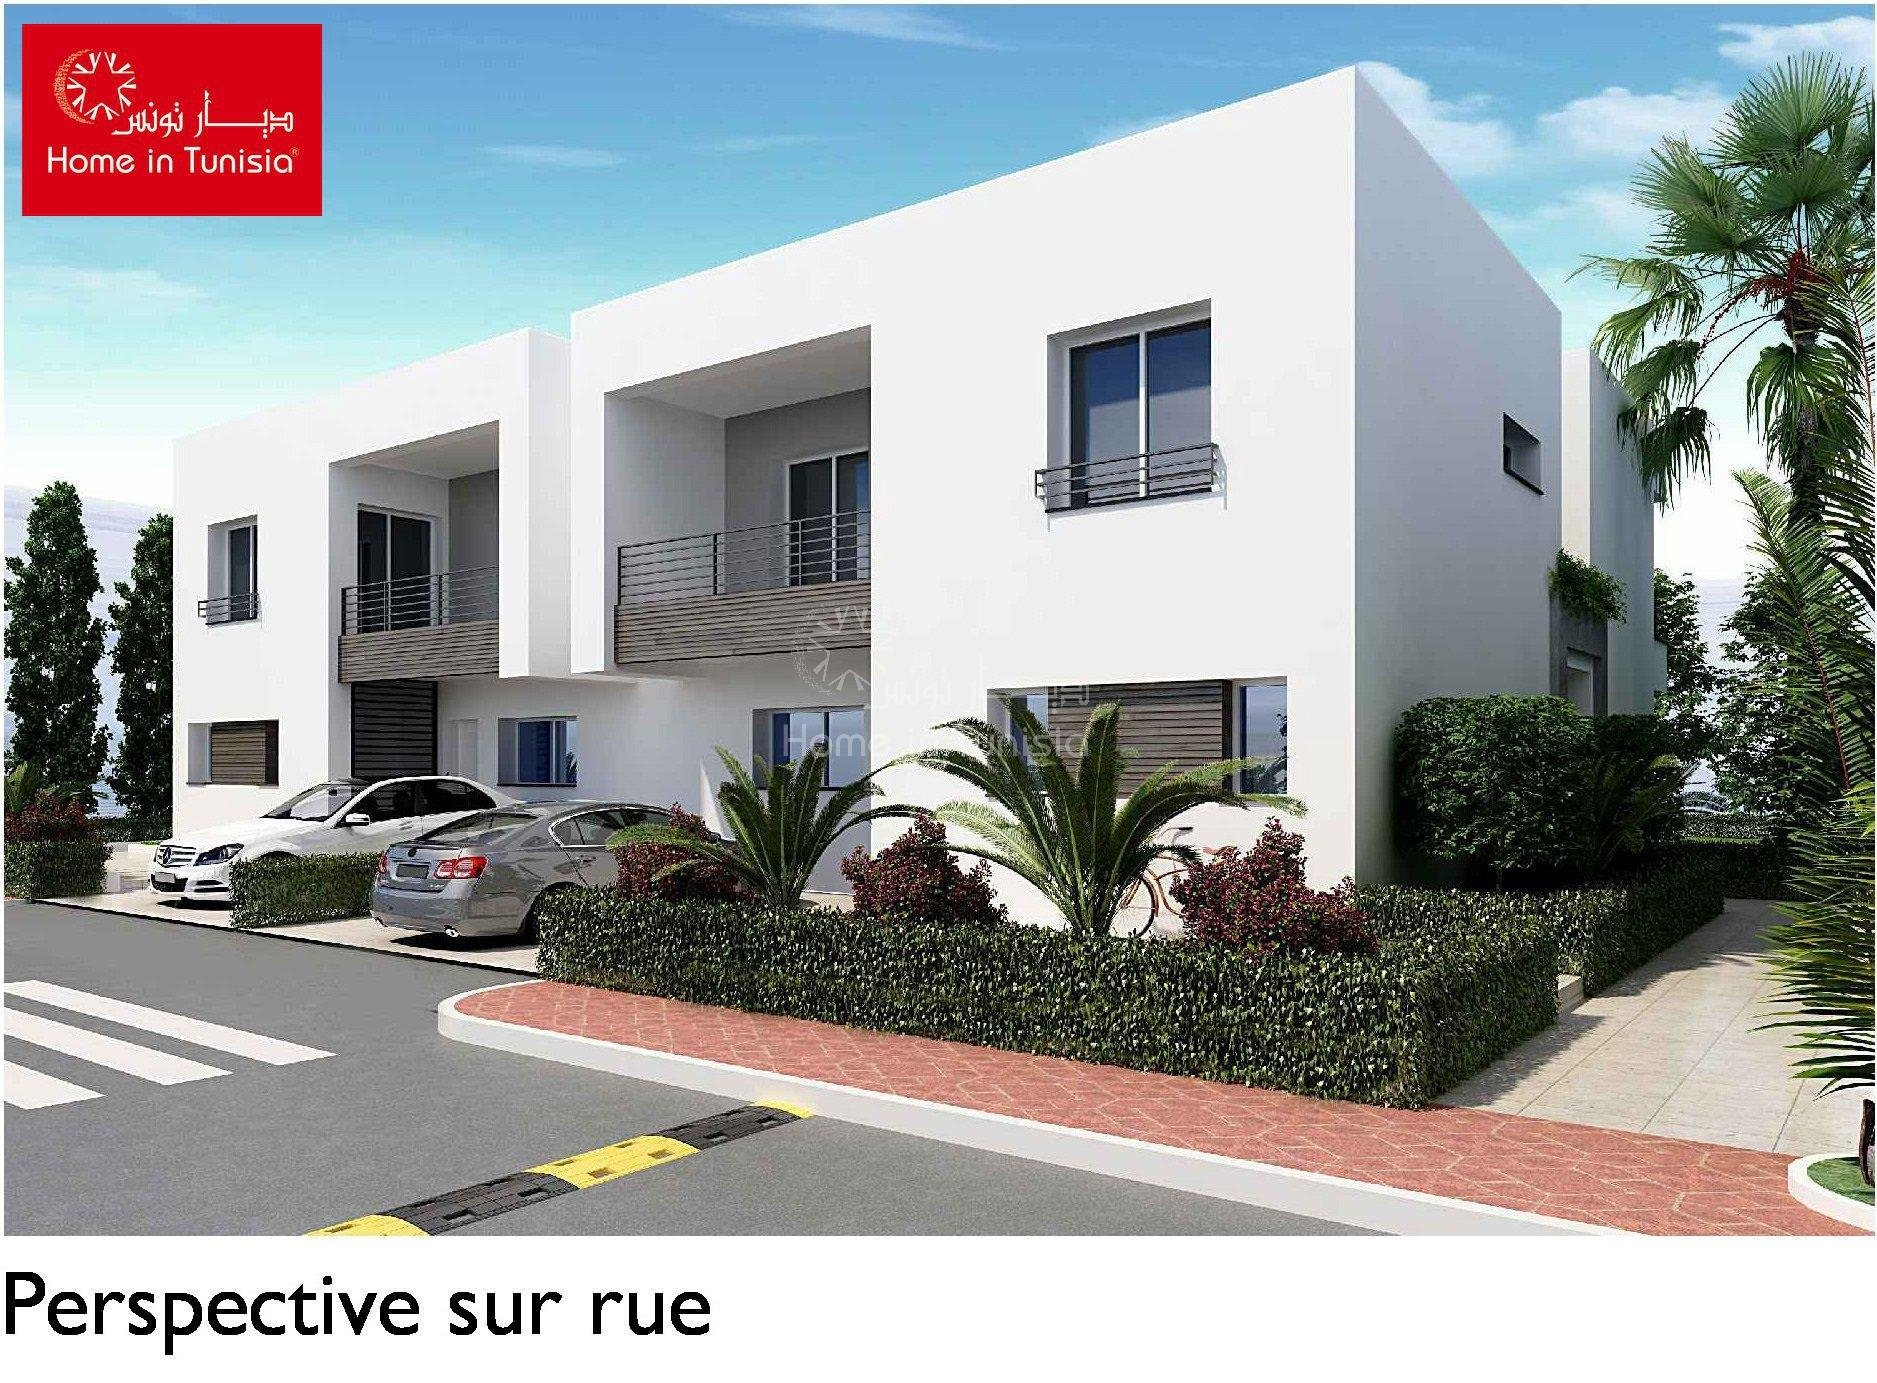 Off Plan For Sale 7 Bed Villa House In Gammarth Gammarth Tunisia, Real  Estate Sales, Buy Property   Holprop Real Estate (1877695)